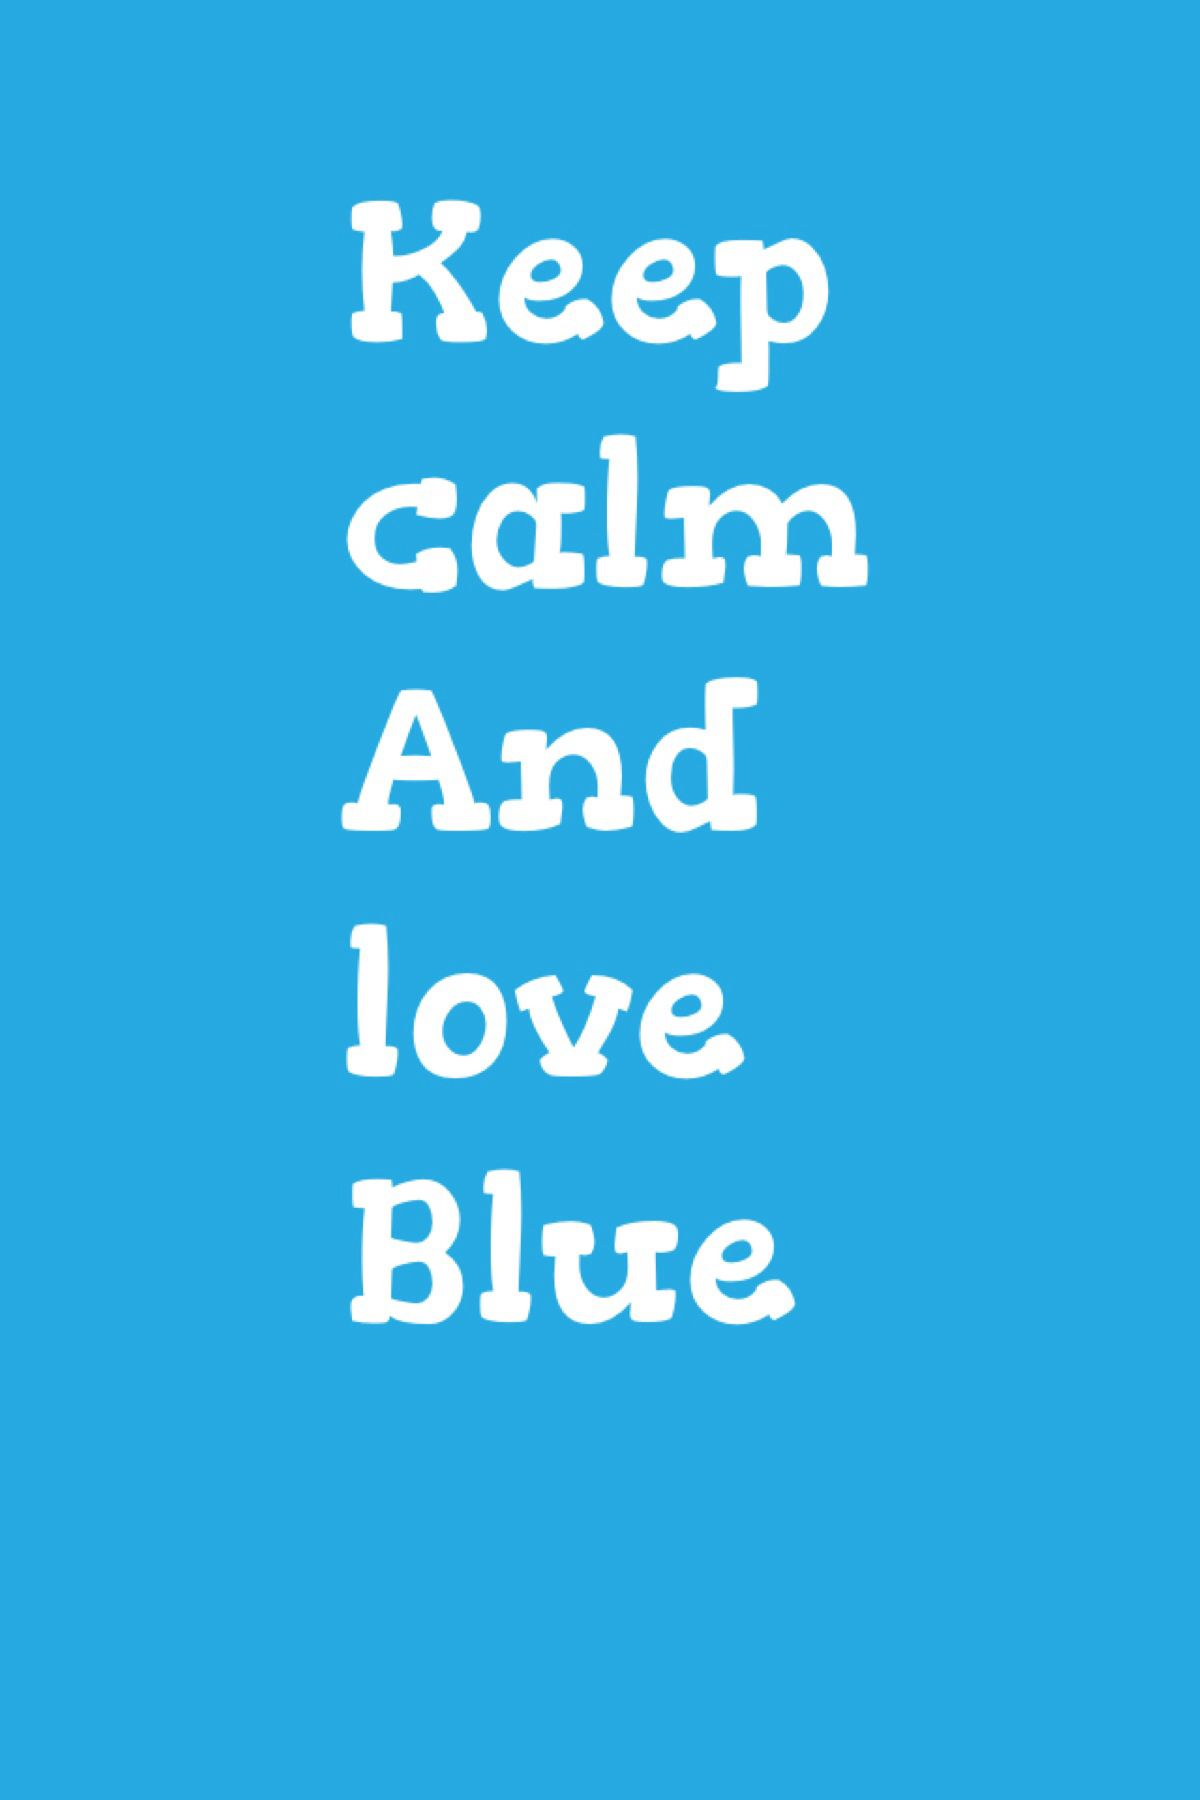 That's just a small little collage Calm, Keep calm, Keep